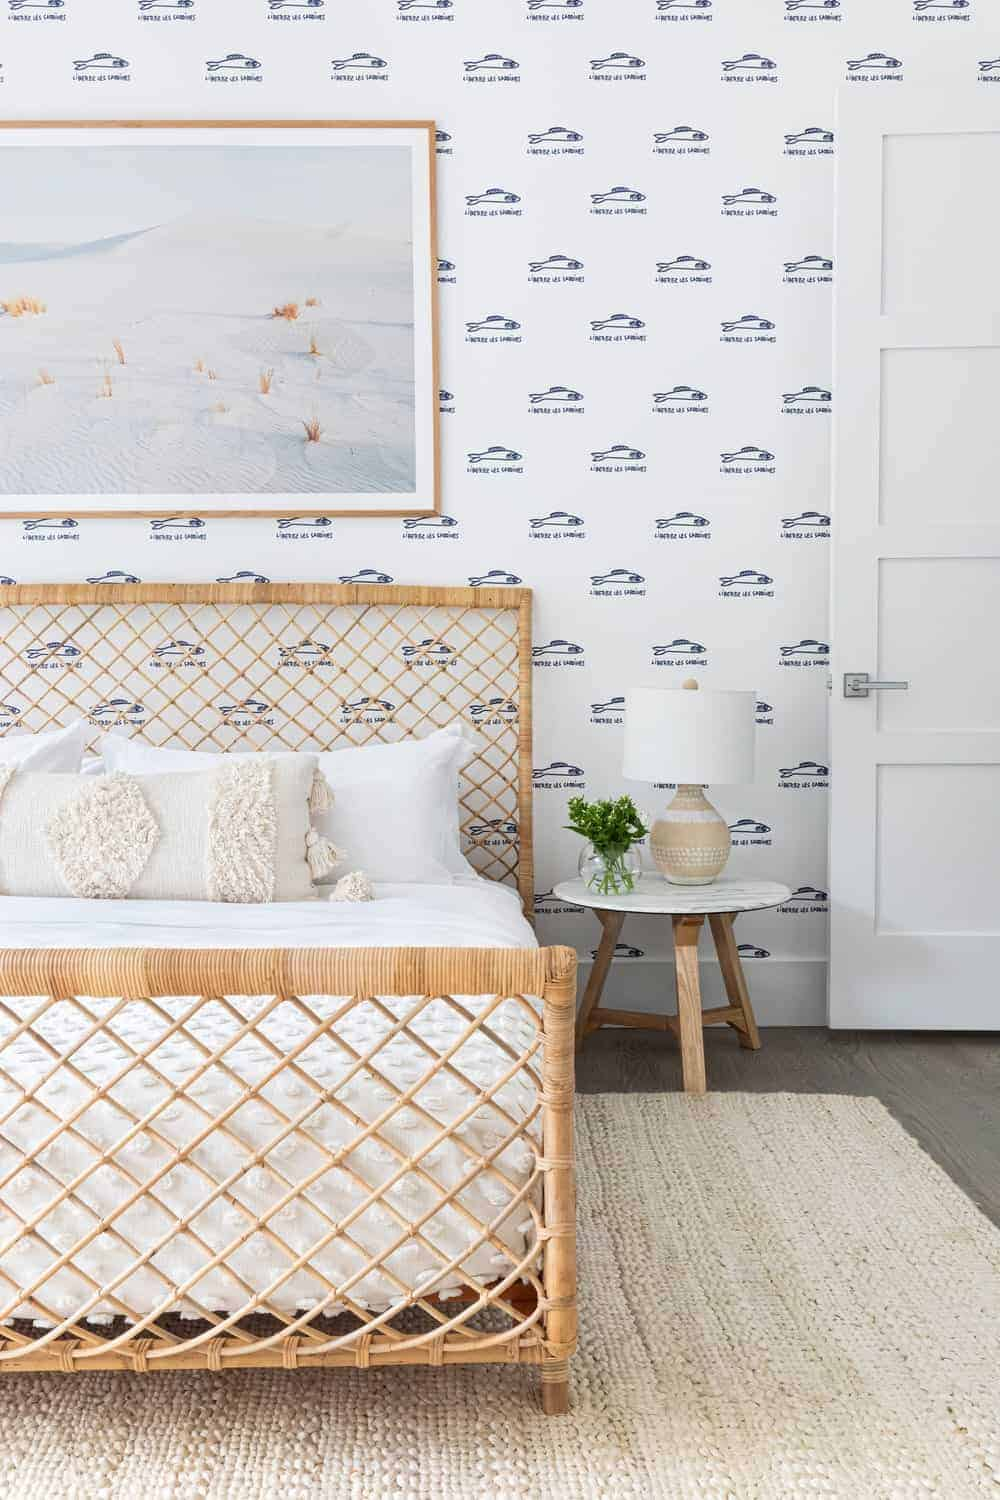 A gorgeous bedroom with a stylish wall design and a fancy bed frame set on the hardwood flooring topped by a large area rug.